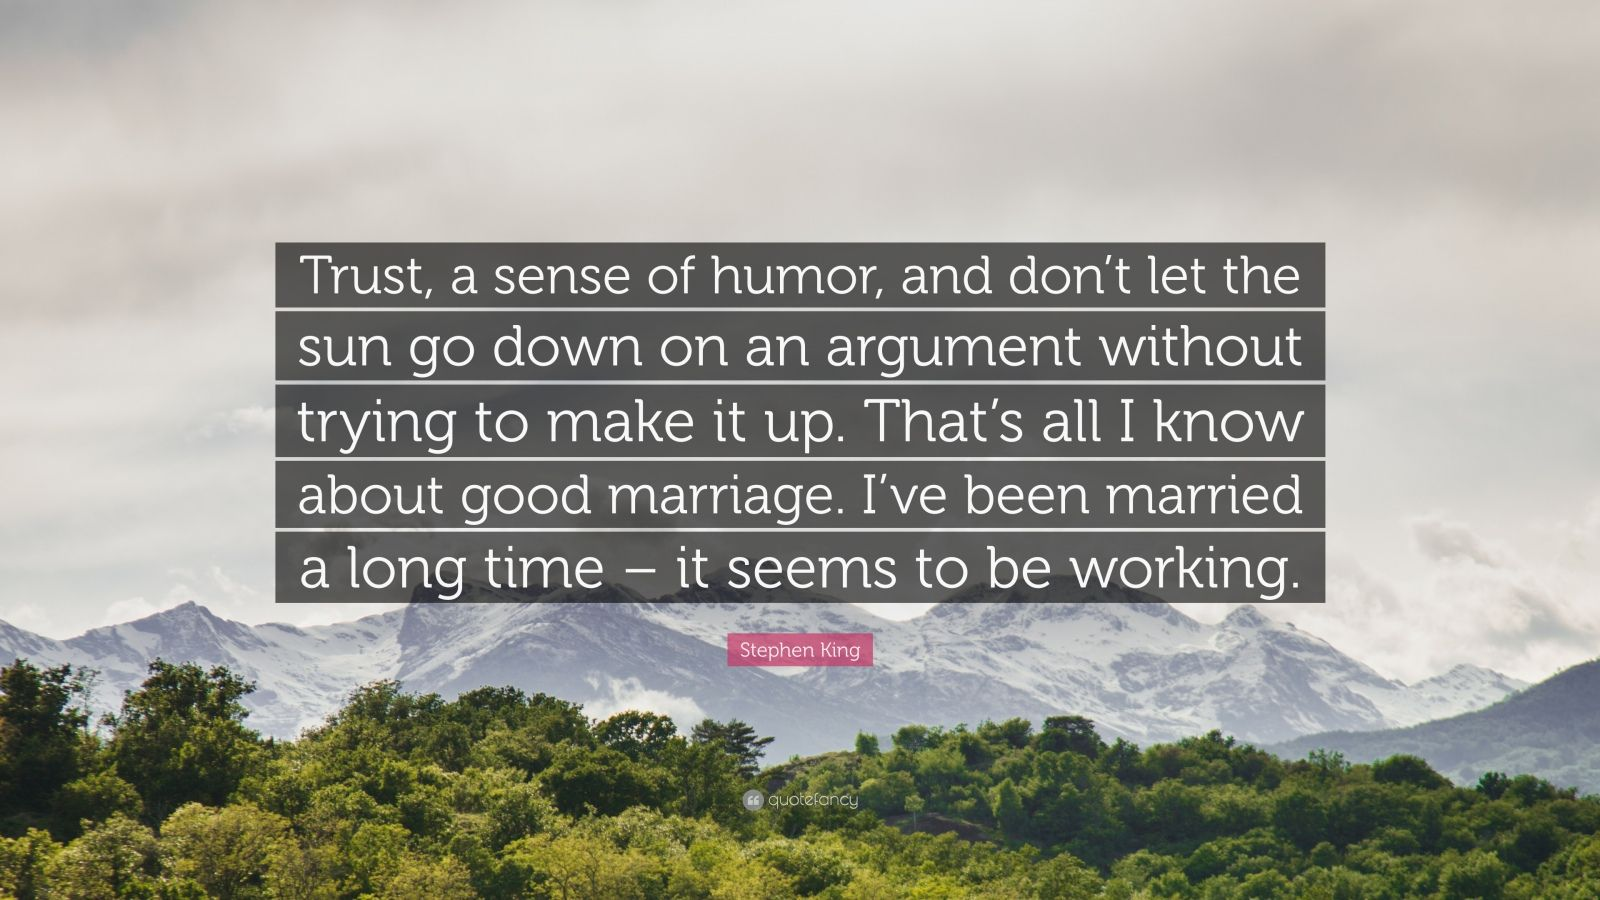 """Stephen King Quote: """"Trust, a sense of humor, and don't let the sun go down on an argument without trying to make it up. That's all I know about good marriage. I've been married a long time – it seems to be working."""""""